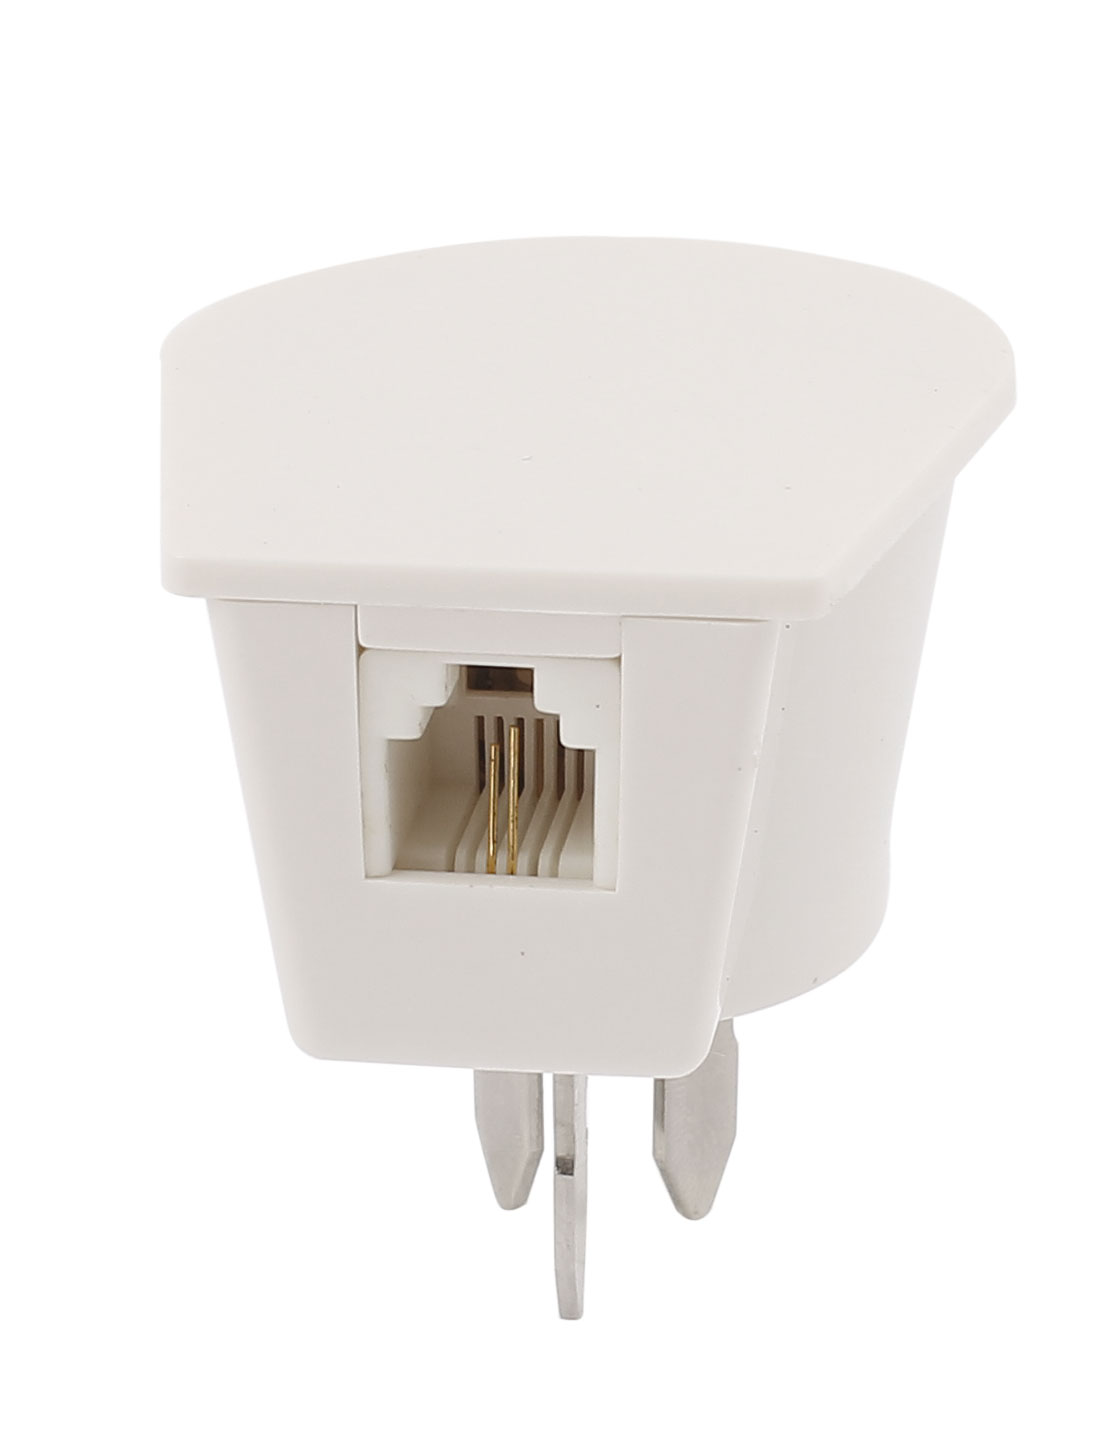 usa modem plug rj11 6p2c to finnish phone jack outlet adapter walmart canada [ 2000 x 2000 Pixel ]